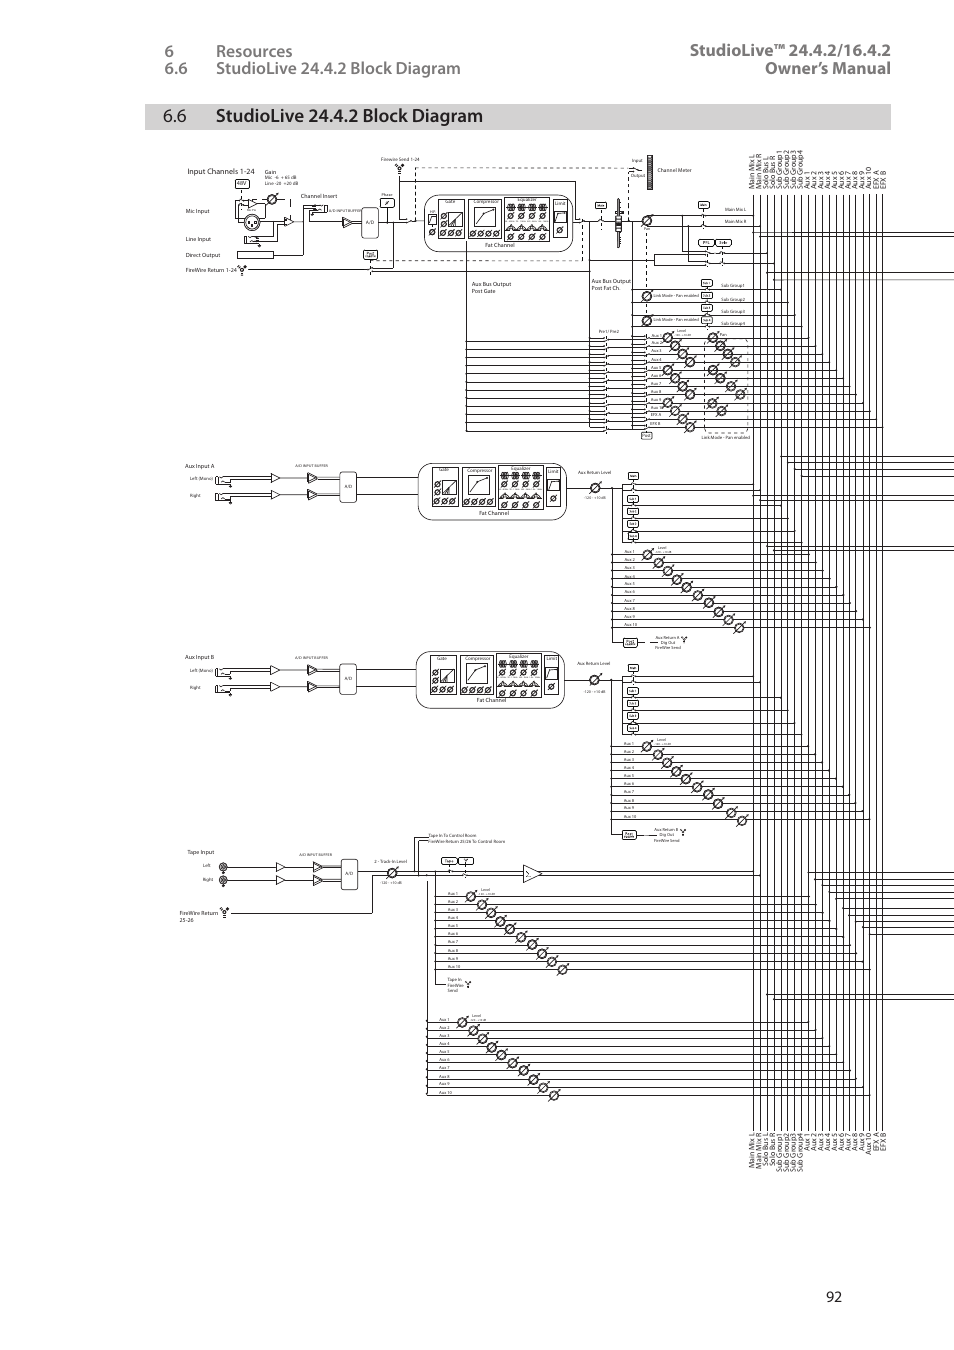 6 studiolive 24.4.2 block diagram, 6 studiolive 24.4.2 block diagram —